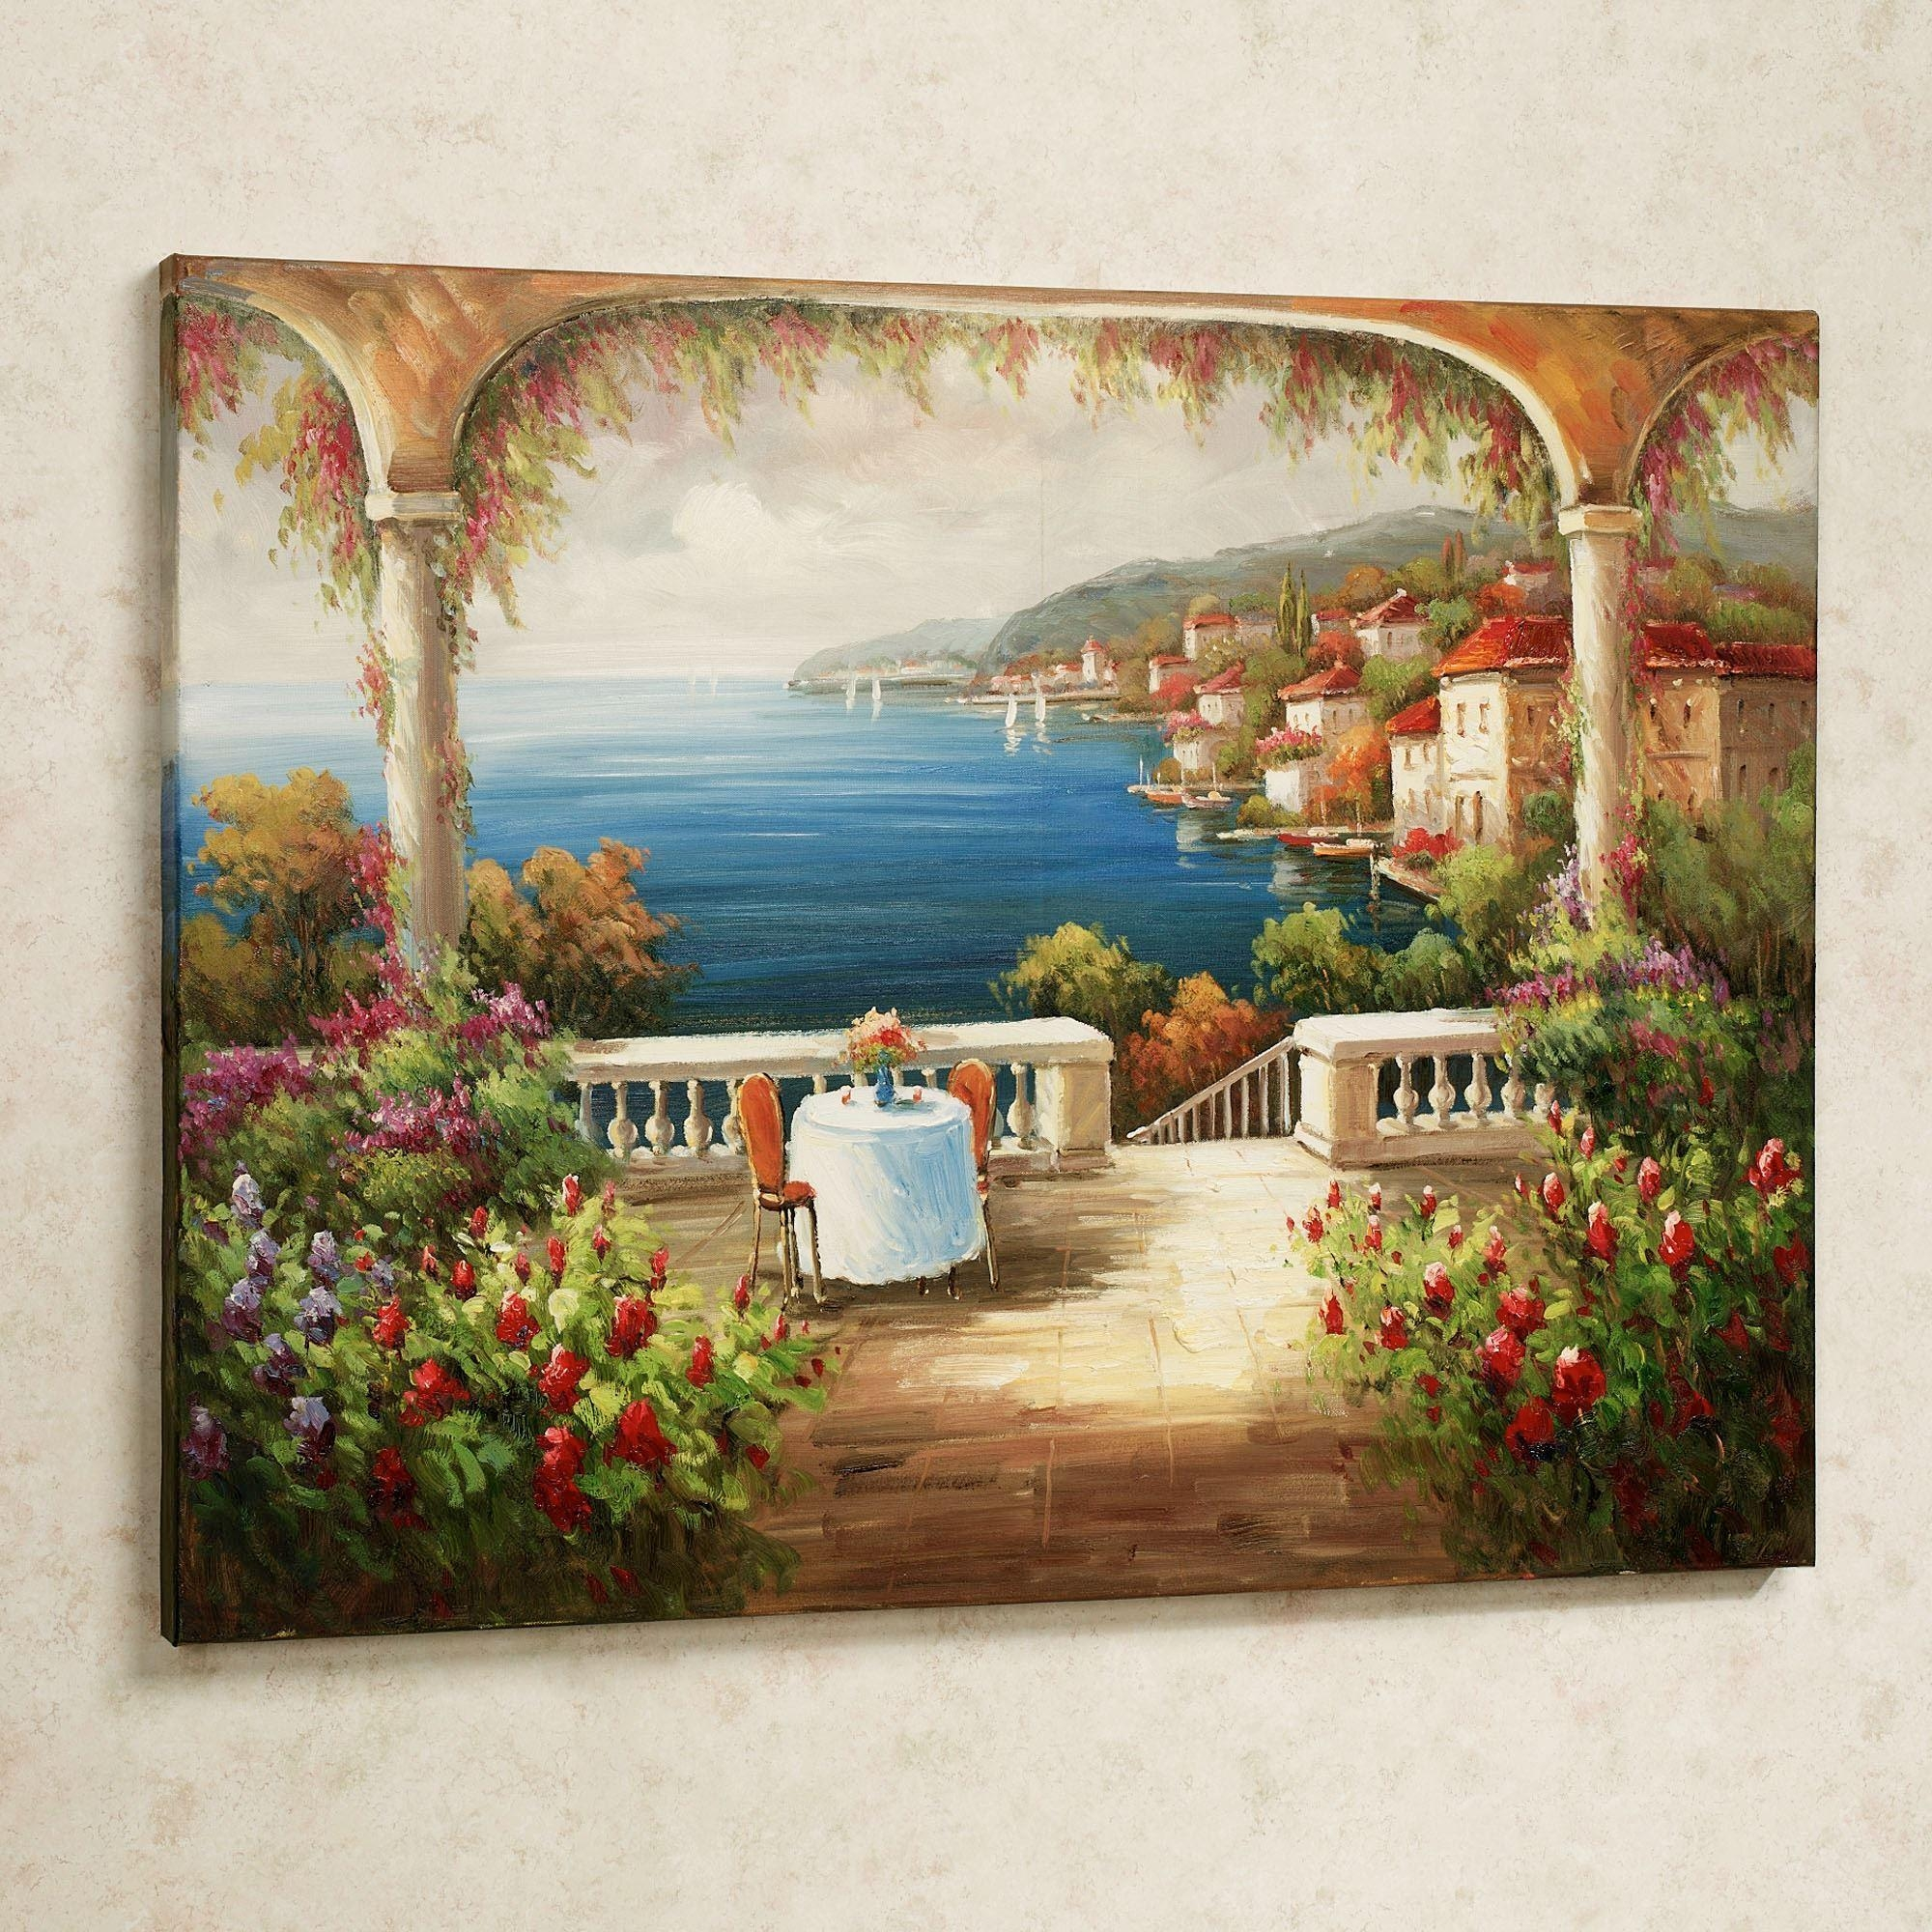 Kitchen : Canvas Prints Wall Art Decor For Living Room Large Throughout Italian Wall Art For Bathroom (Image 12 of 20)